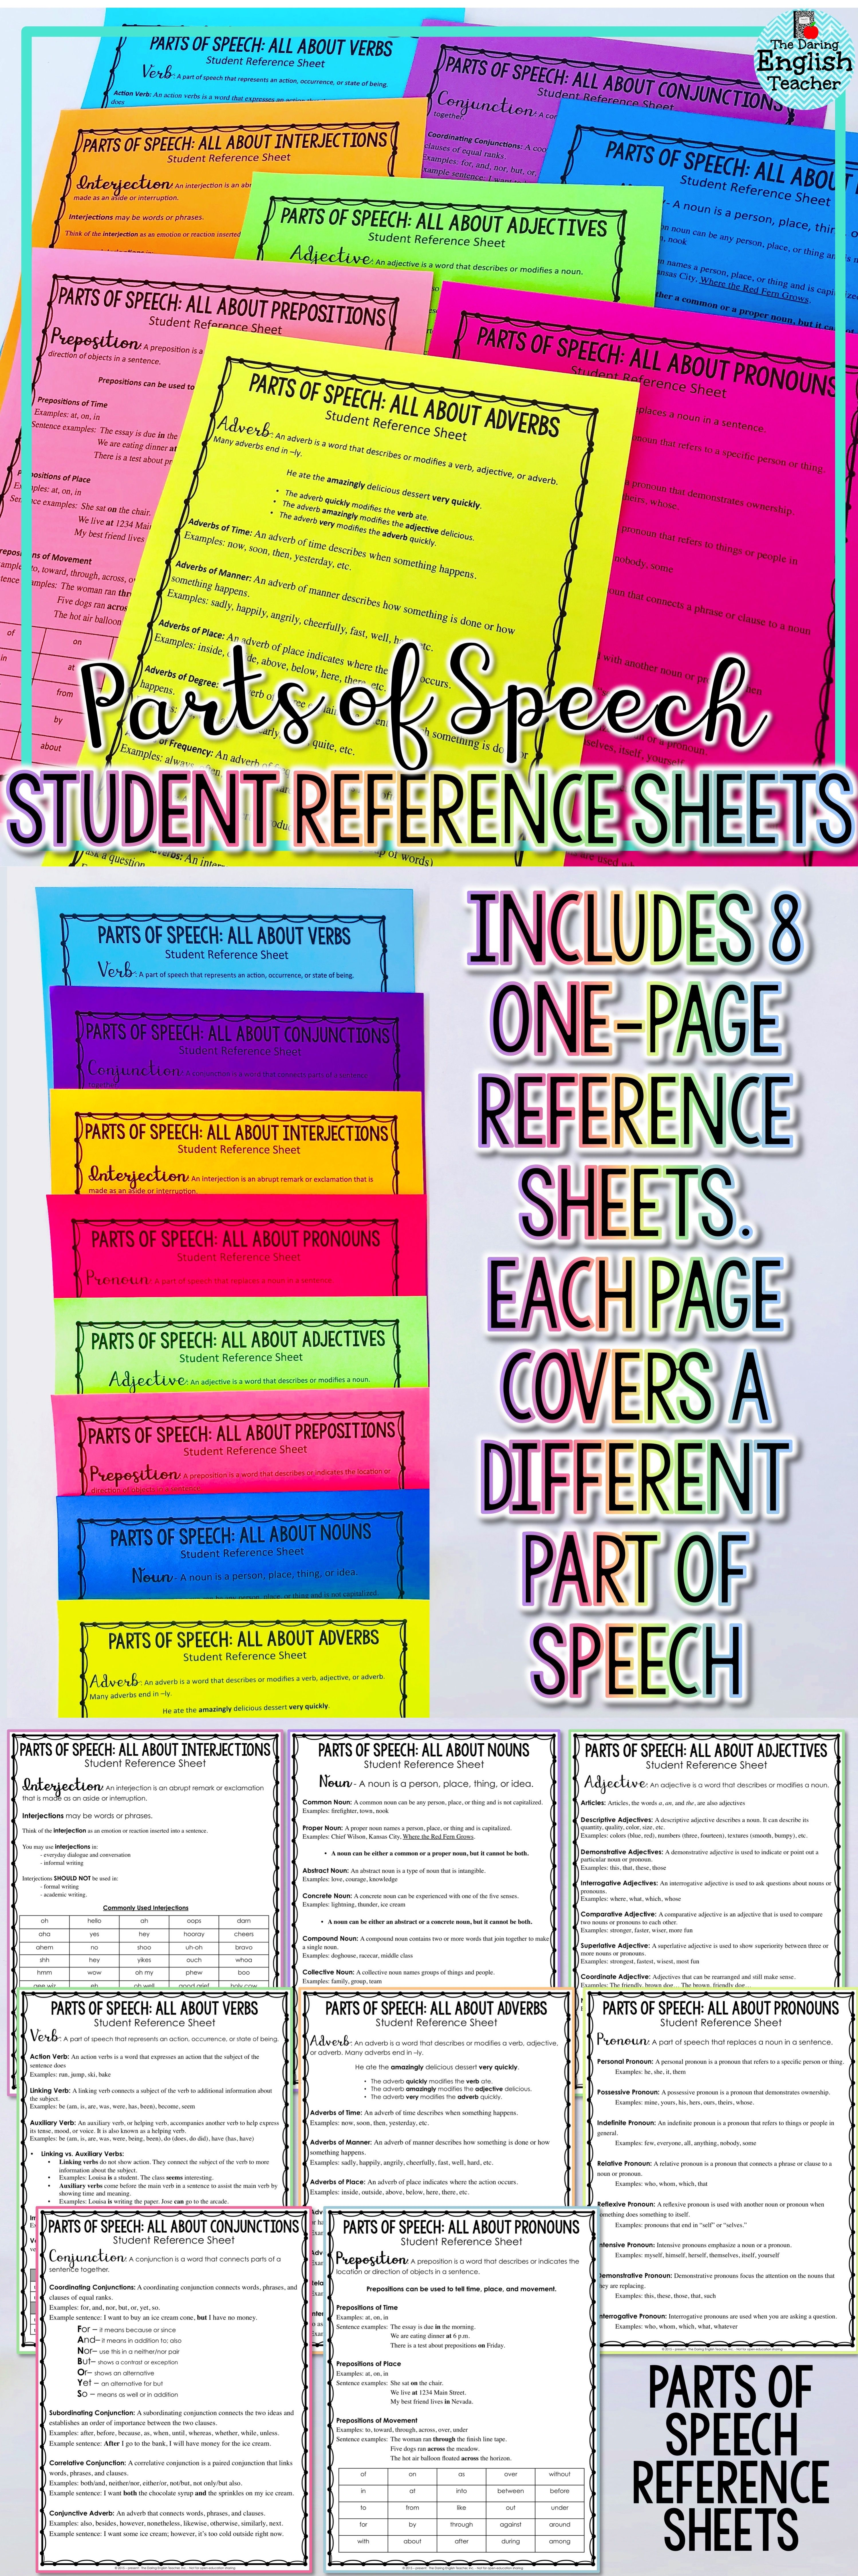 Parts Of Speech Student Reference Sheets With Images